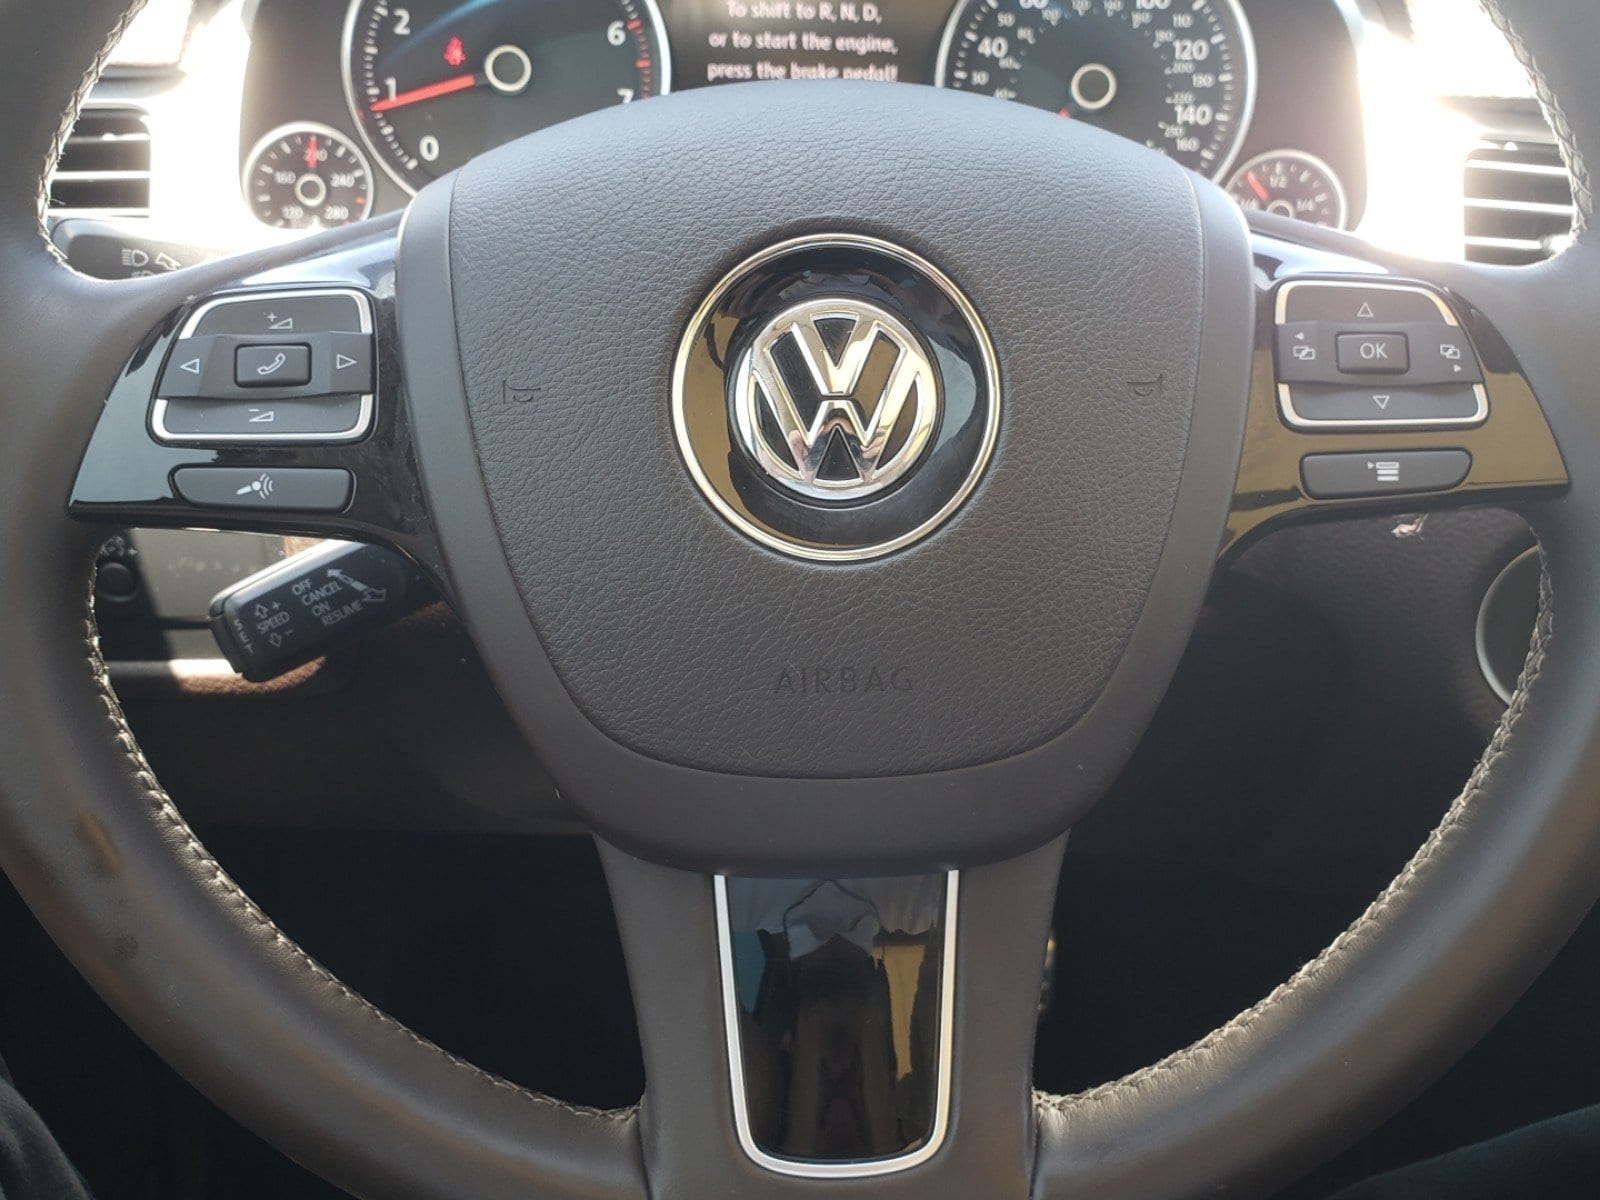 Pre-Owned 2012 Volkswagen Touareg Hybrid Base